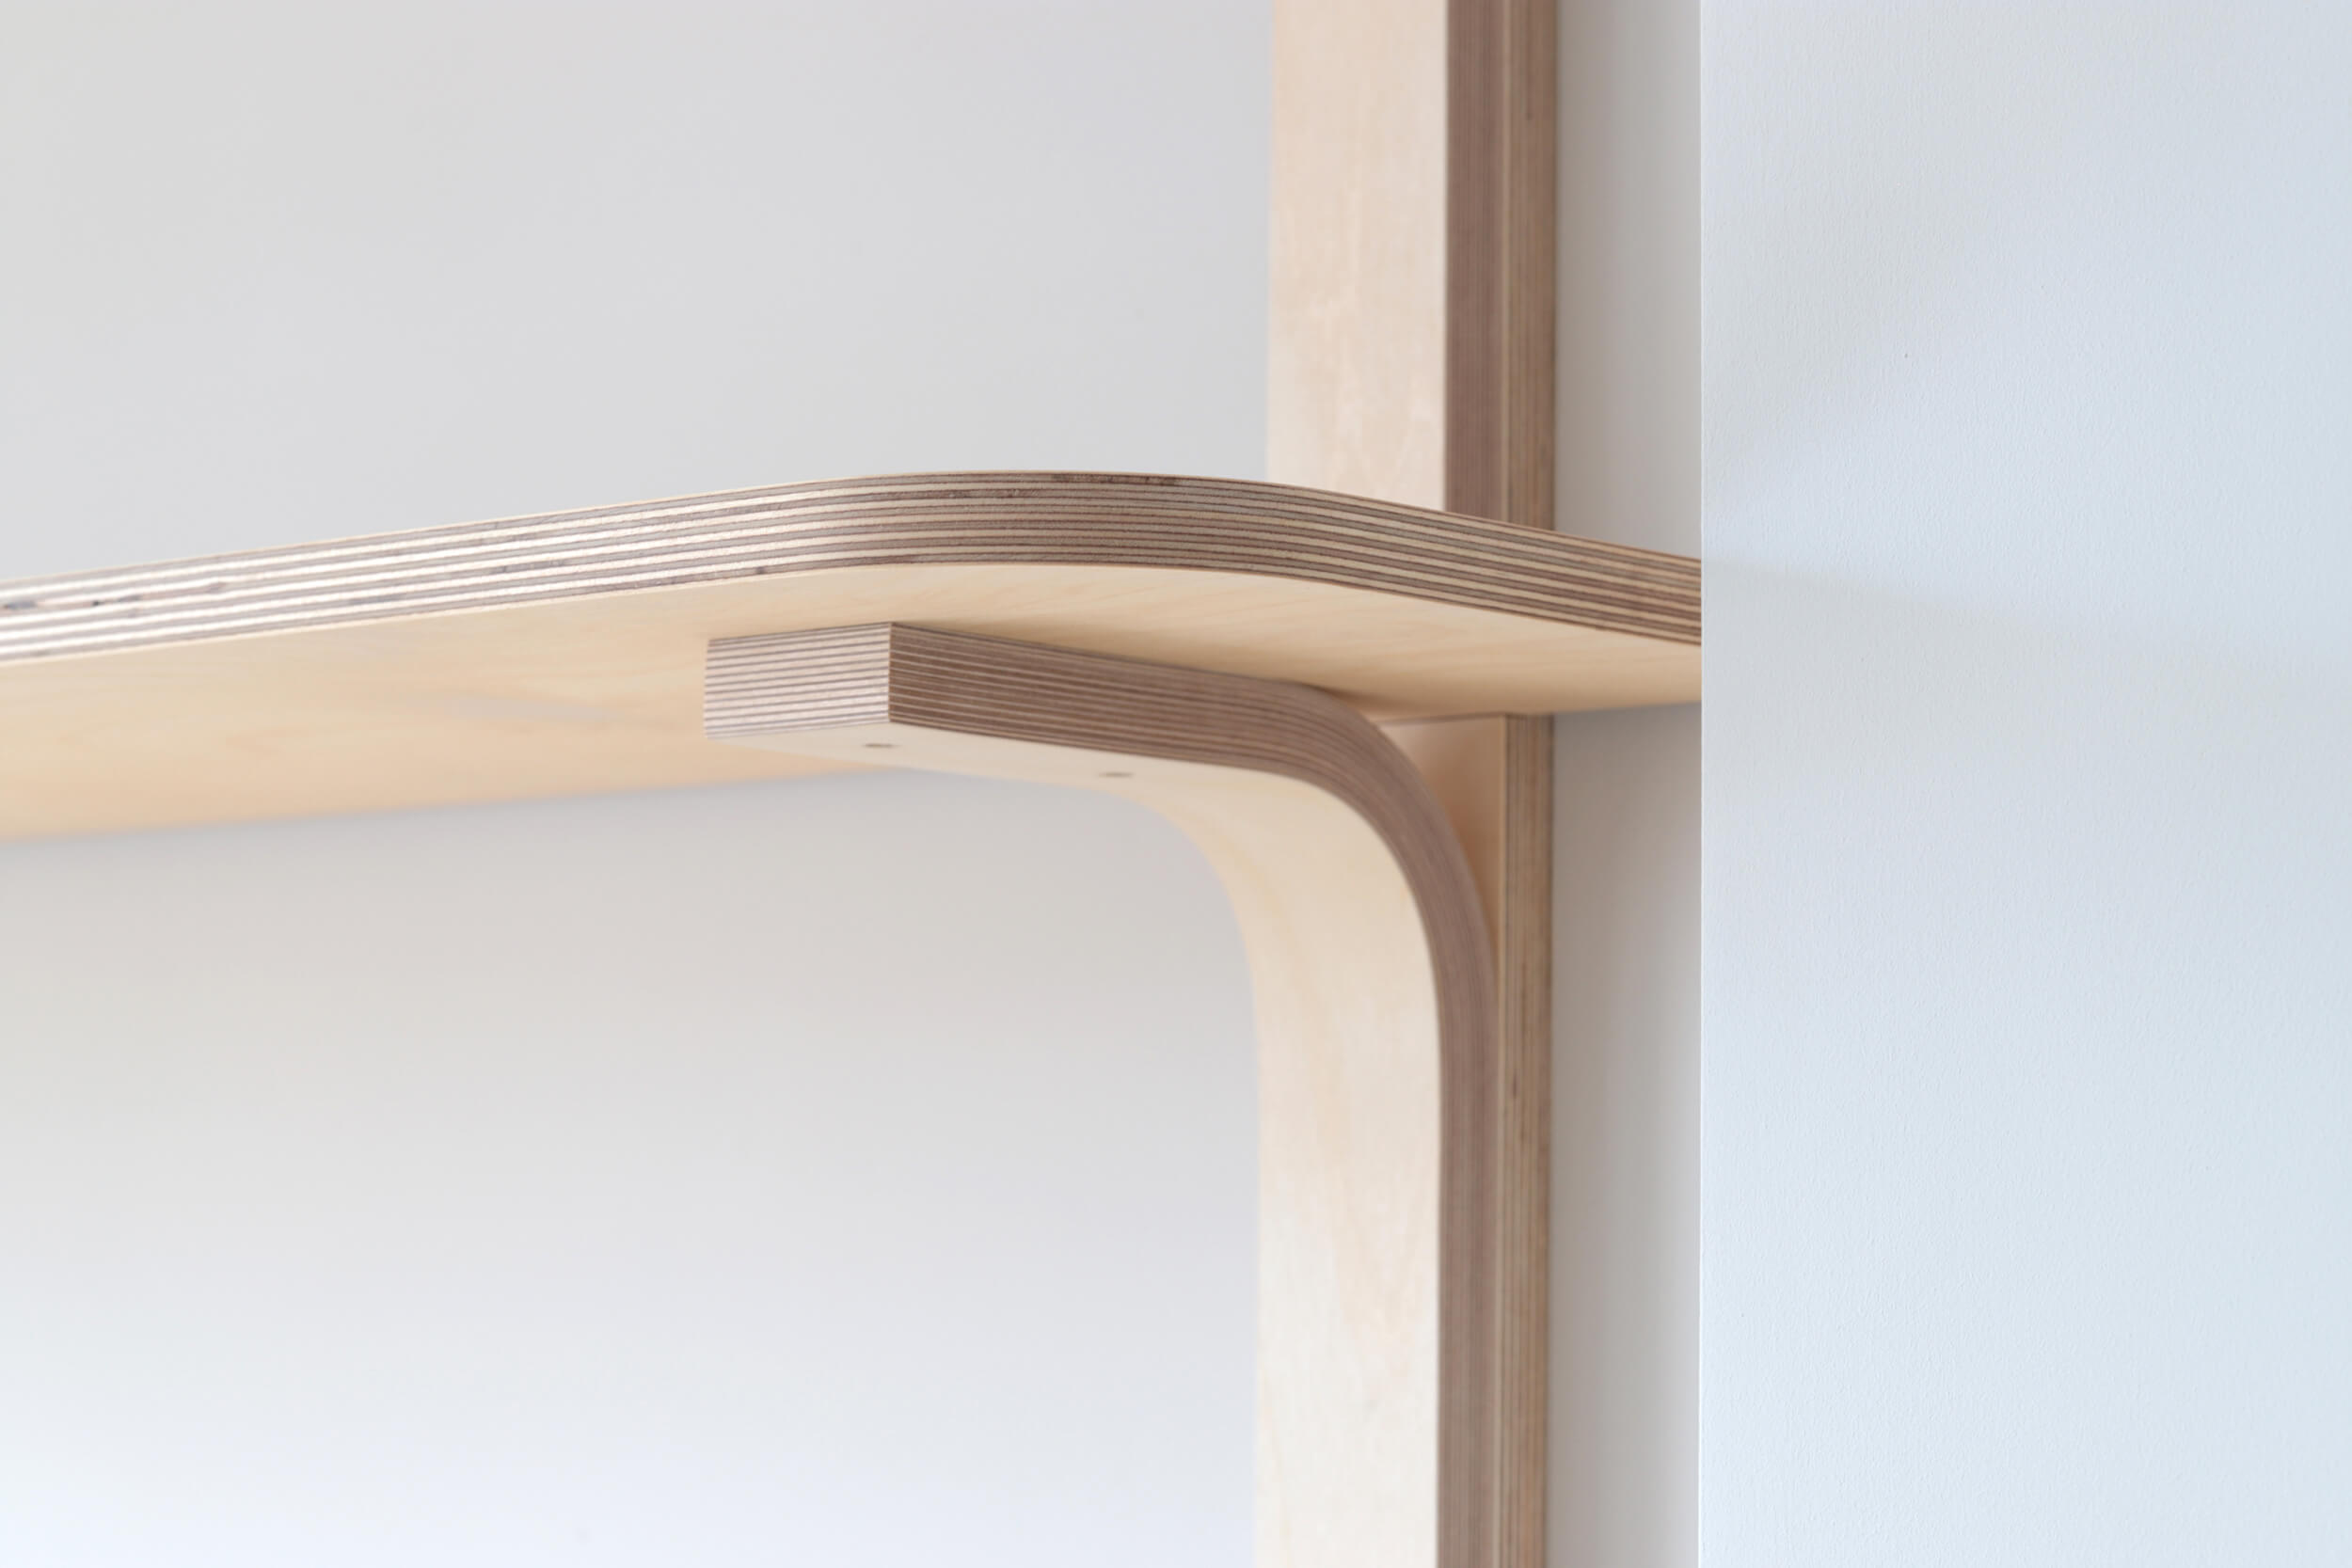 A close up of plywood shelving joint for living alcove storage by Lozi